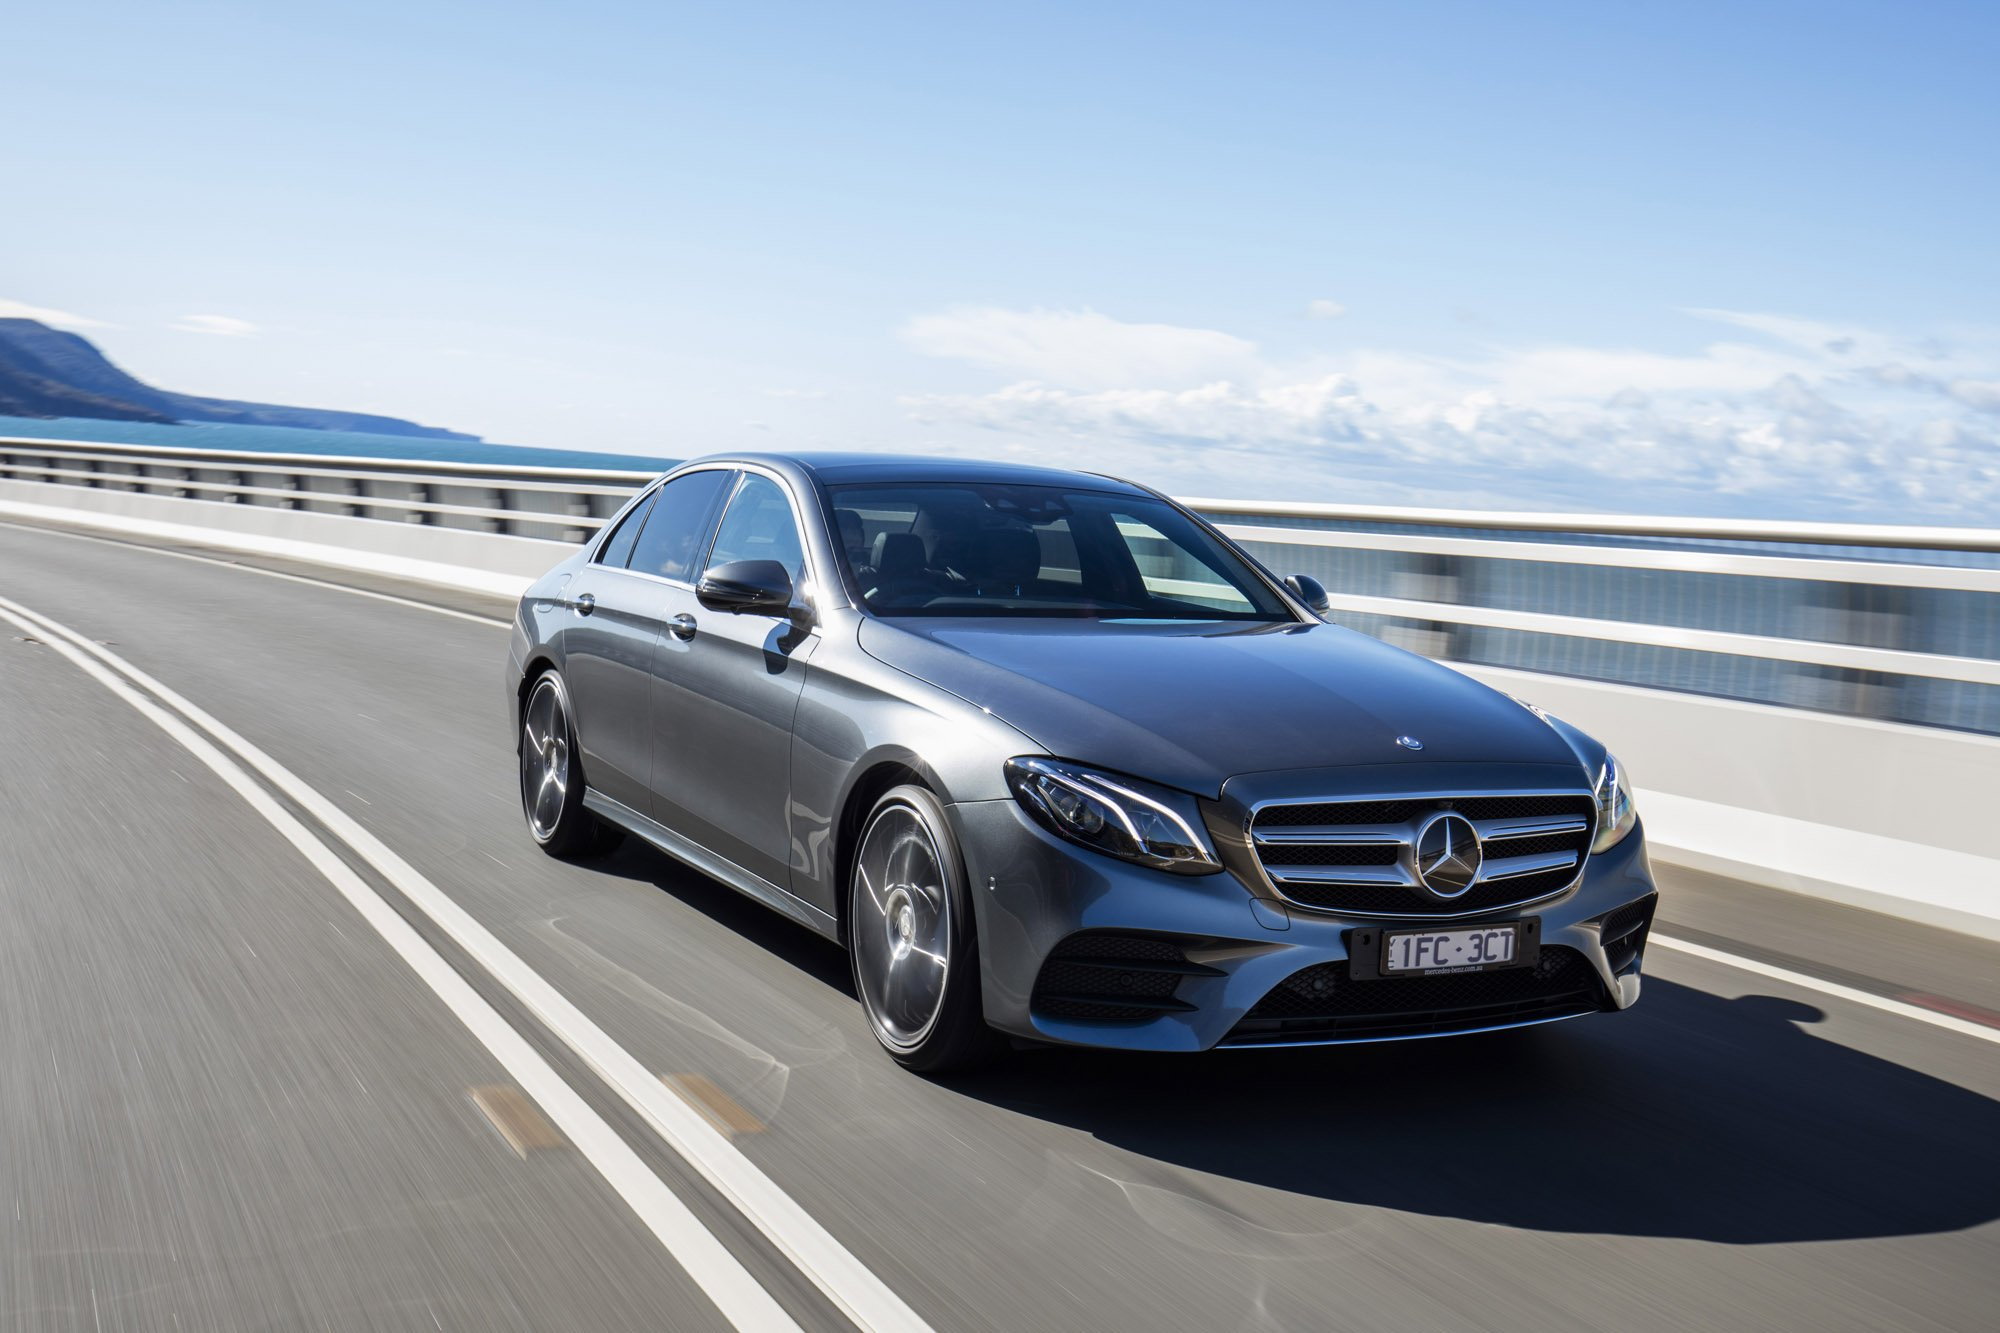 Mercedes Benz Dealership >> 2016 Mercedes-Benz E-Class Review - photos | CarAdvice